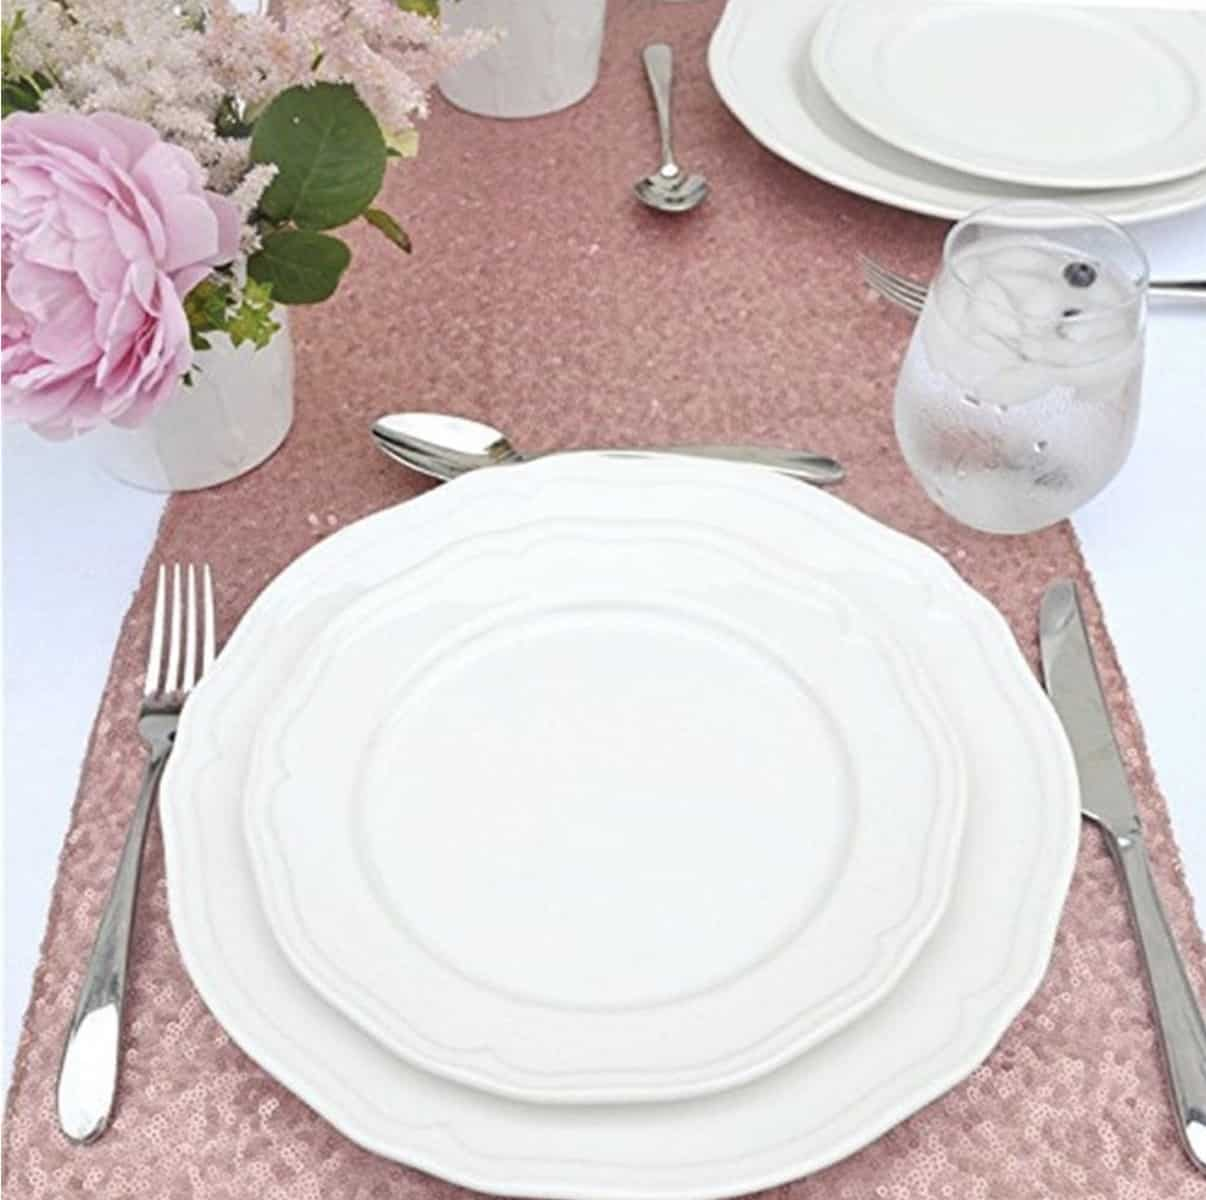 baby shower table set up with sequin table runner and white china